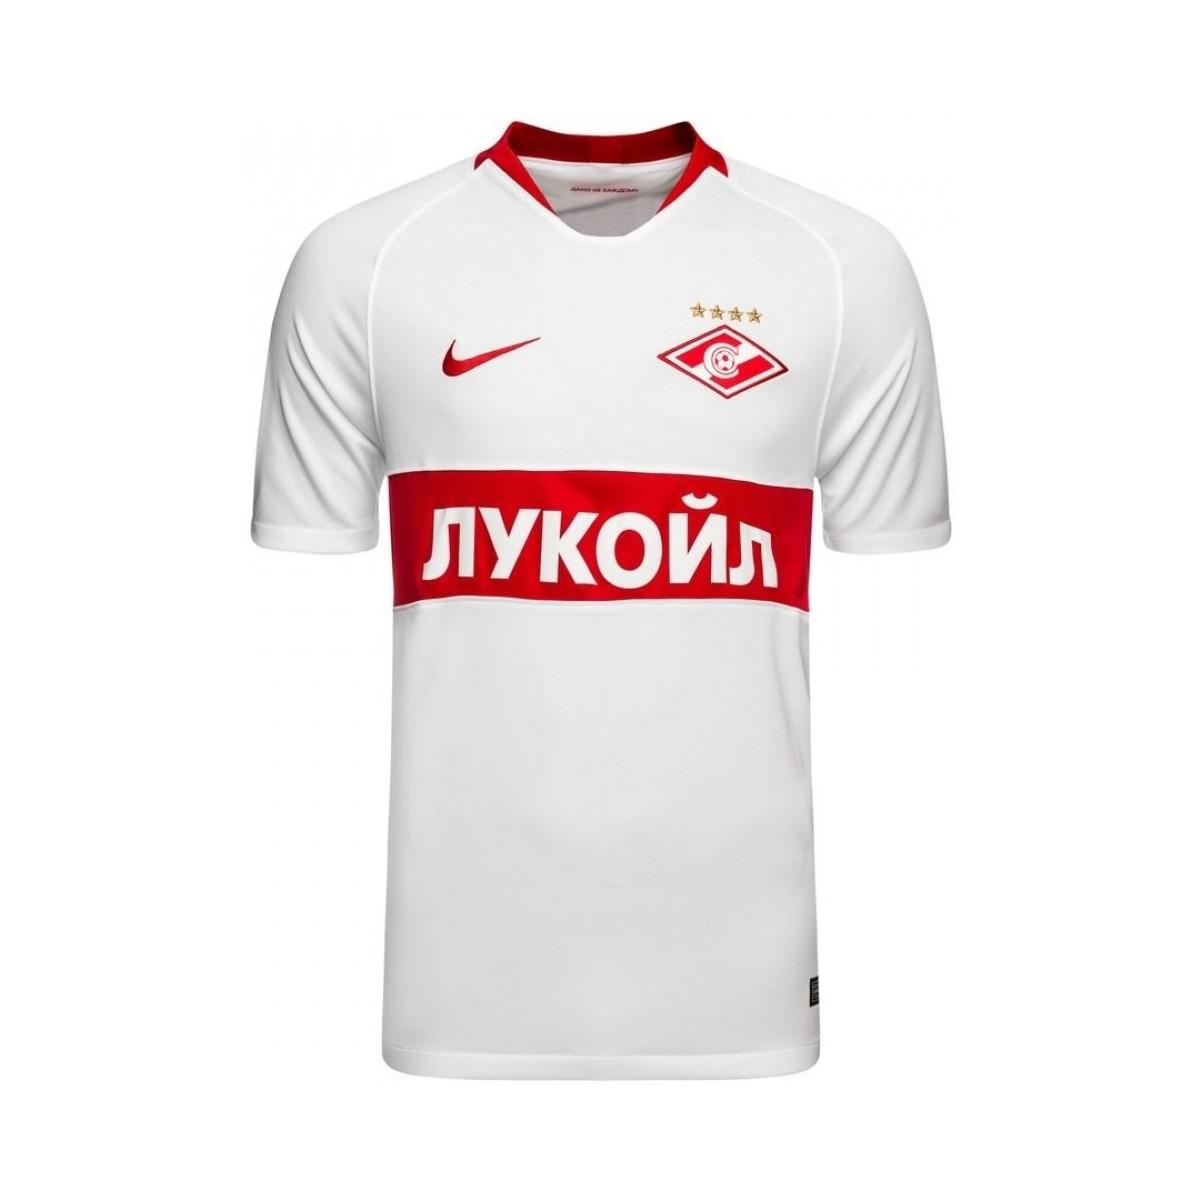 Nike 2018-2019 Spartak Moscow Away Football Shirt Women s T Shirt In ... f71eb7754